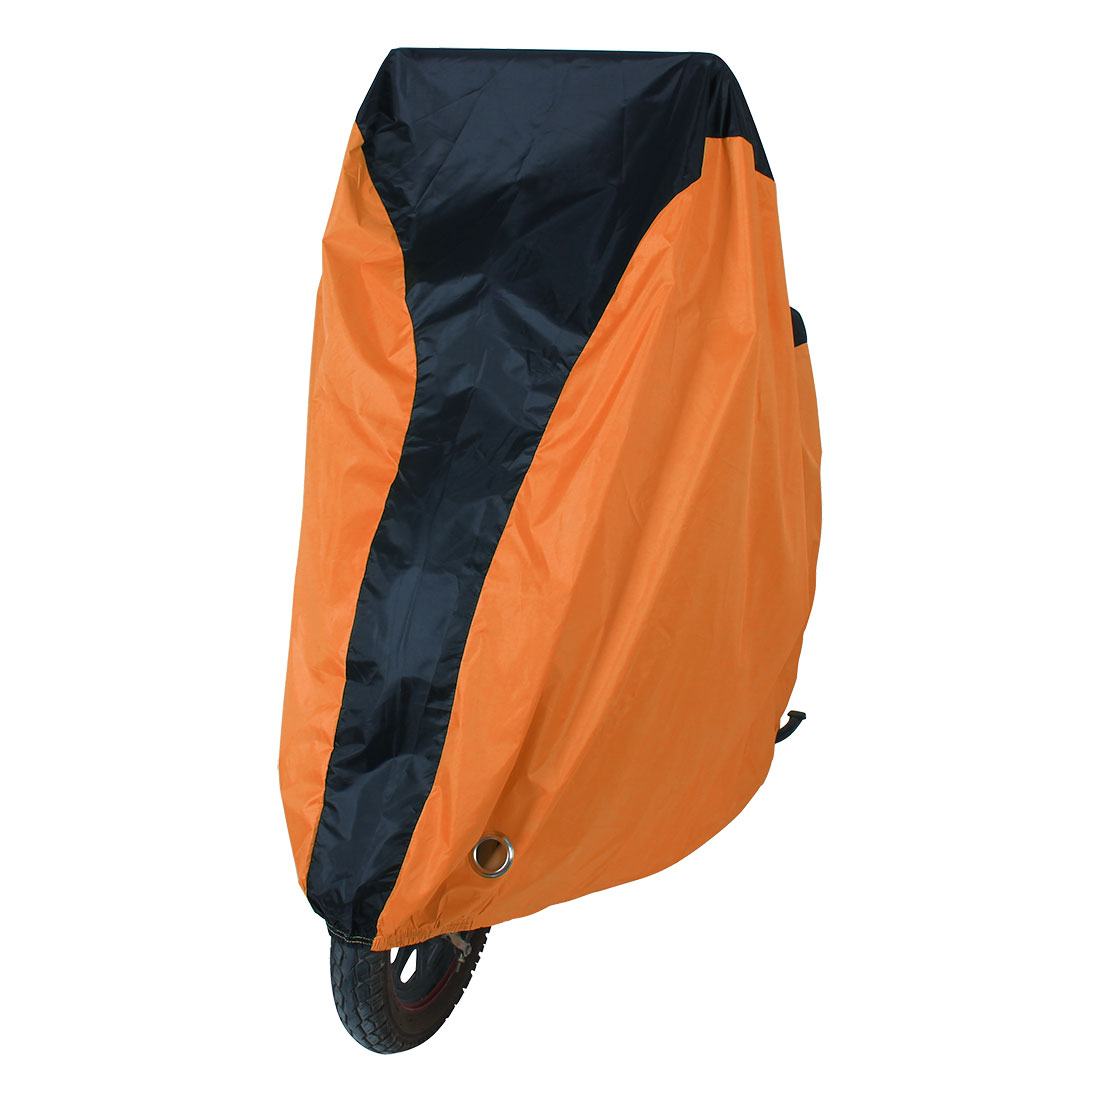 Outdoor Bike Bicycle Rain Dust Cover Water Resistant Garage Scooter Protector XL Orange